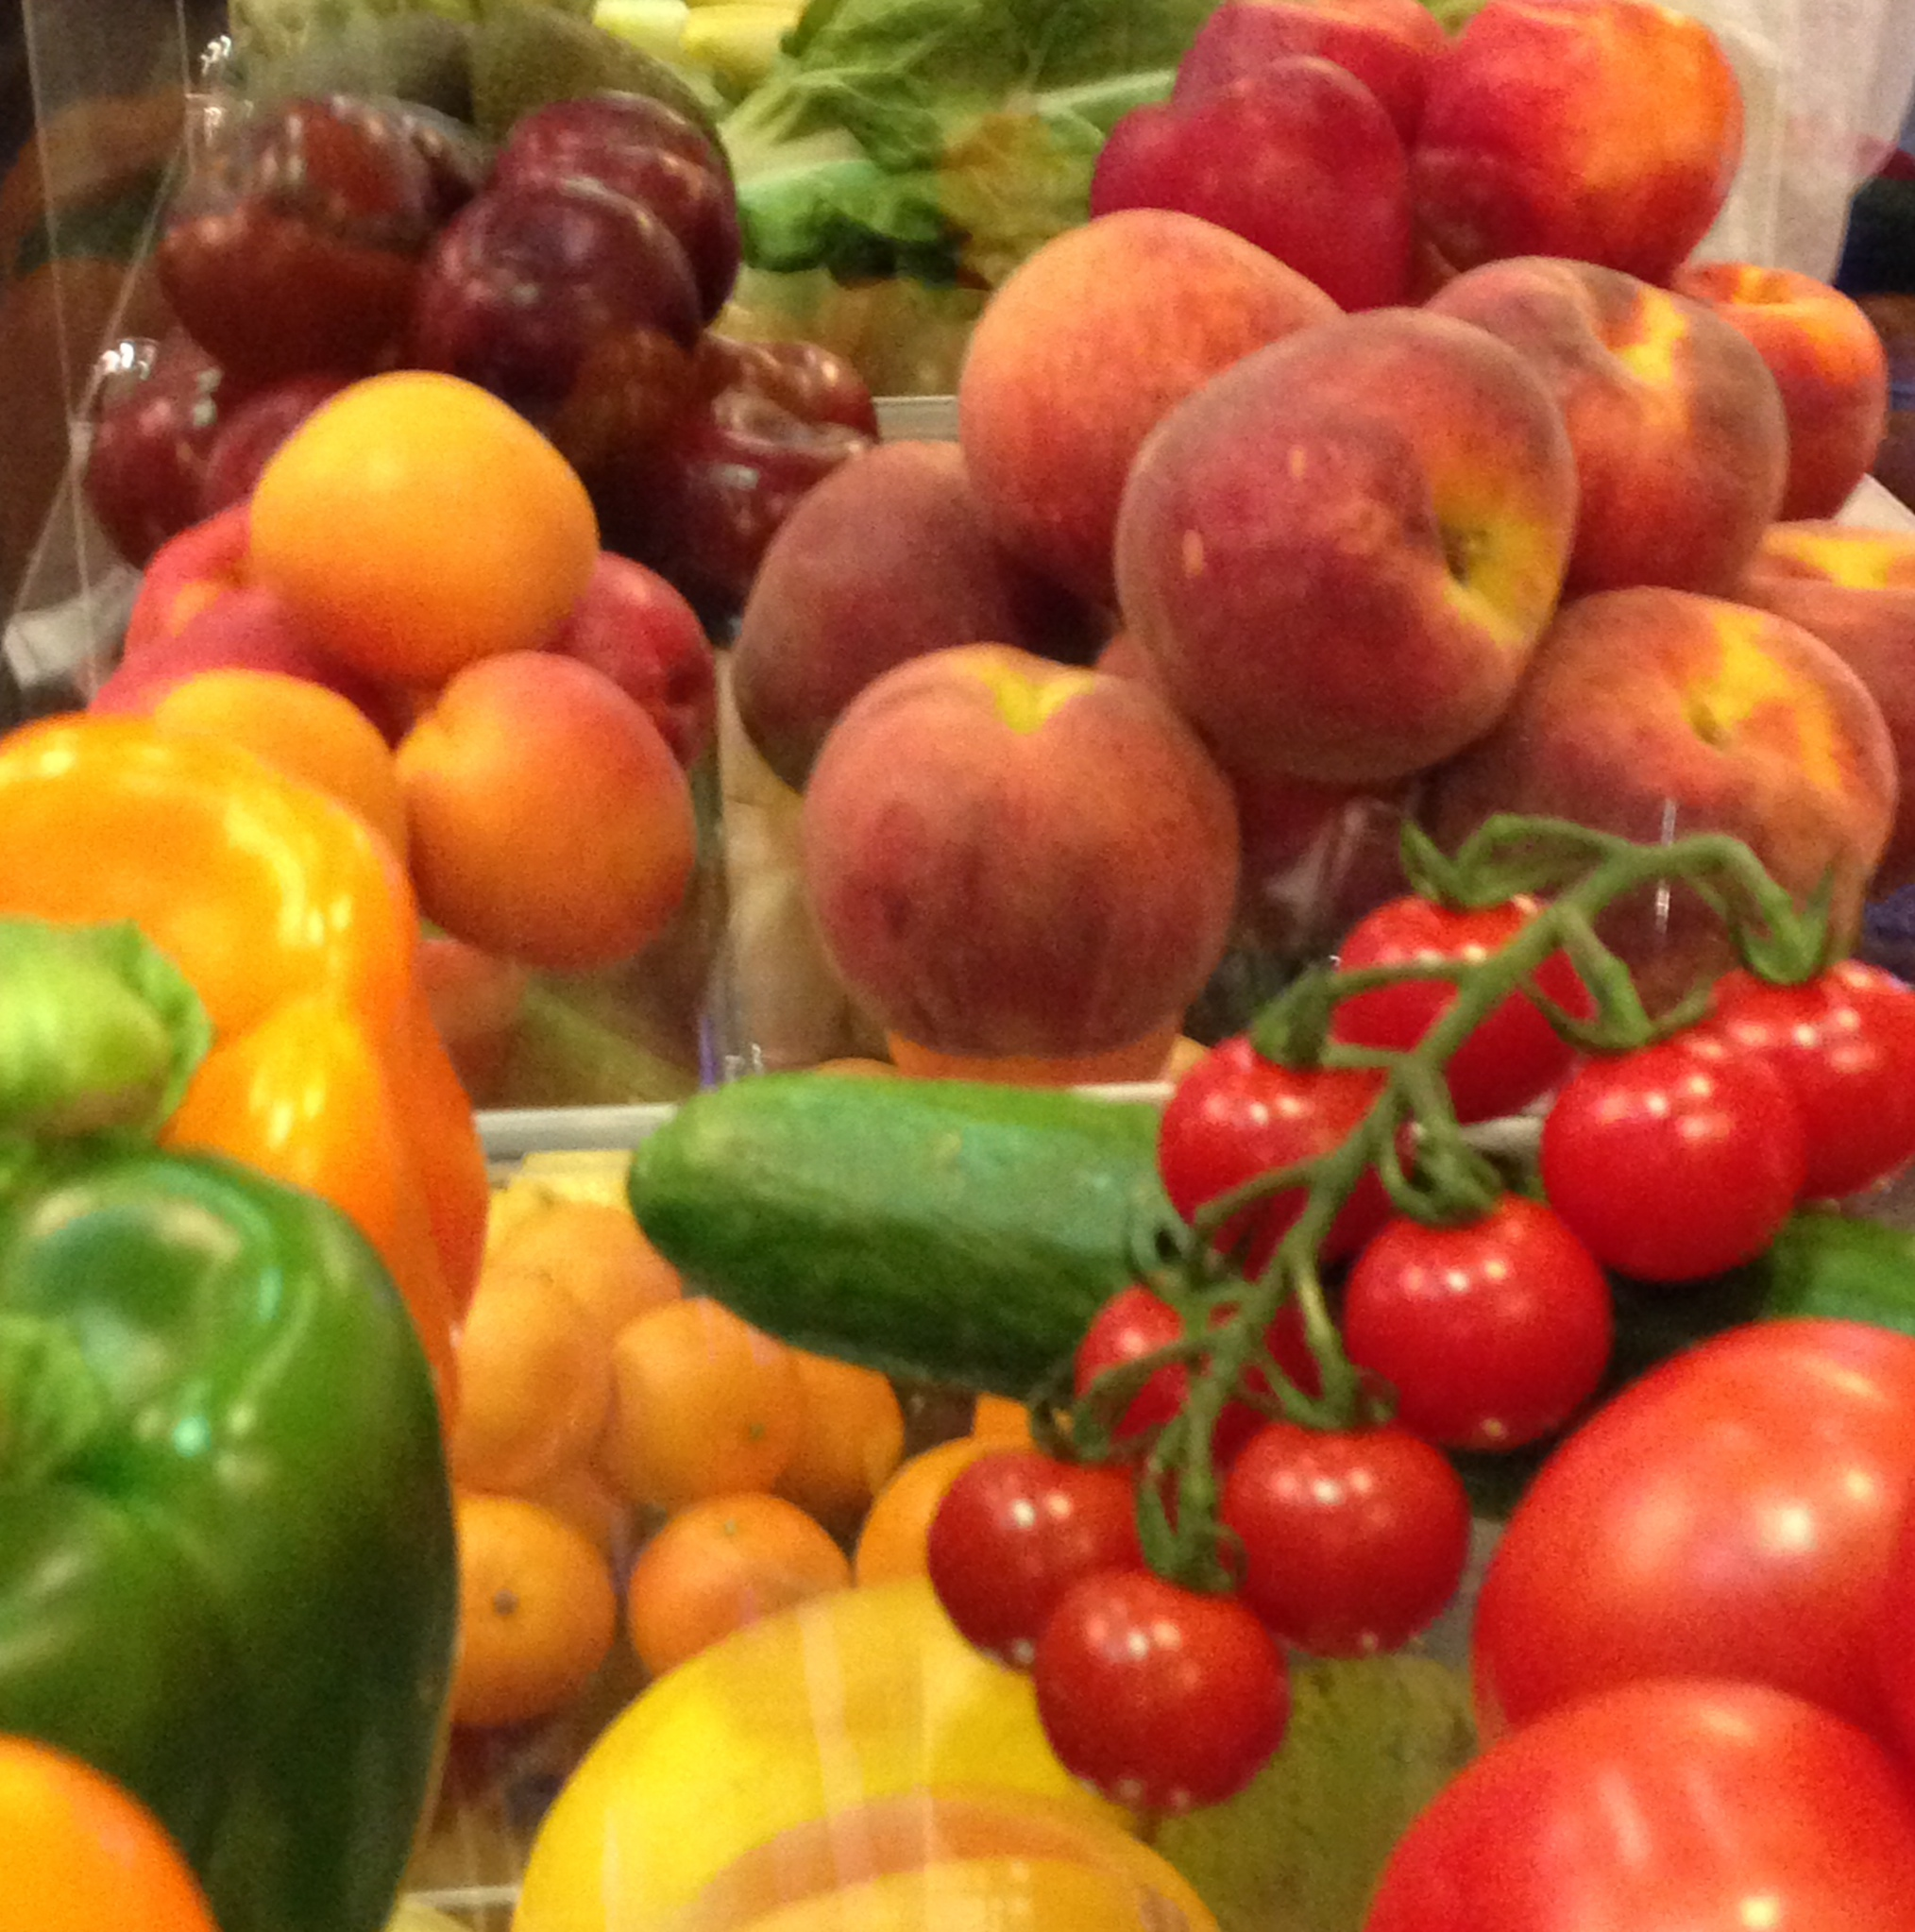 Wholesale trade in fruit and vegetables was slow and steady in the UK in the first half of June but picked up towards the end of the month as the weather improved, according to the UK Government's Department for Environment, Food and Rural Affairs (Defra).